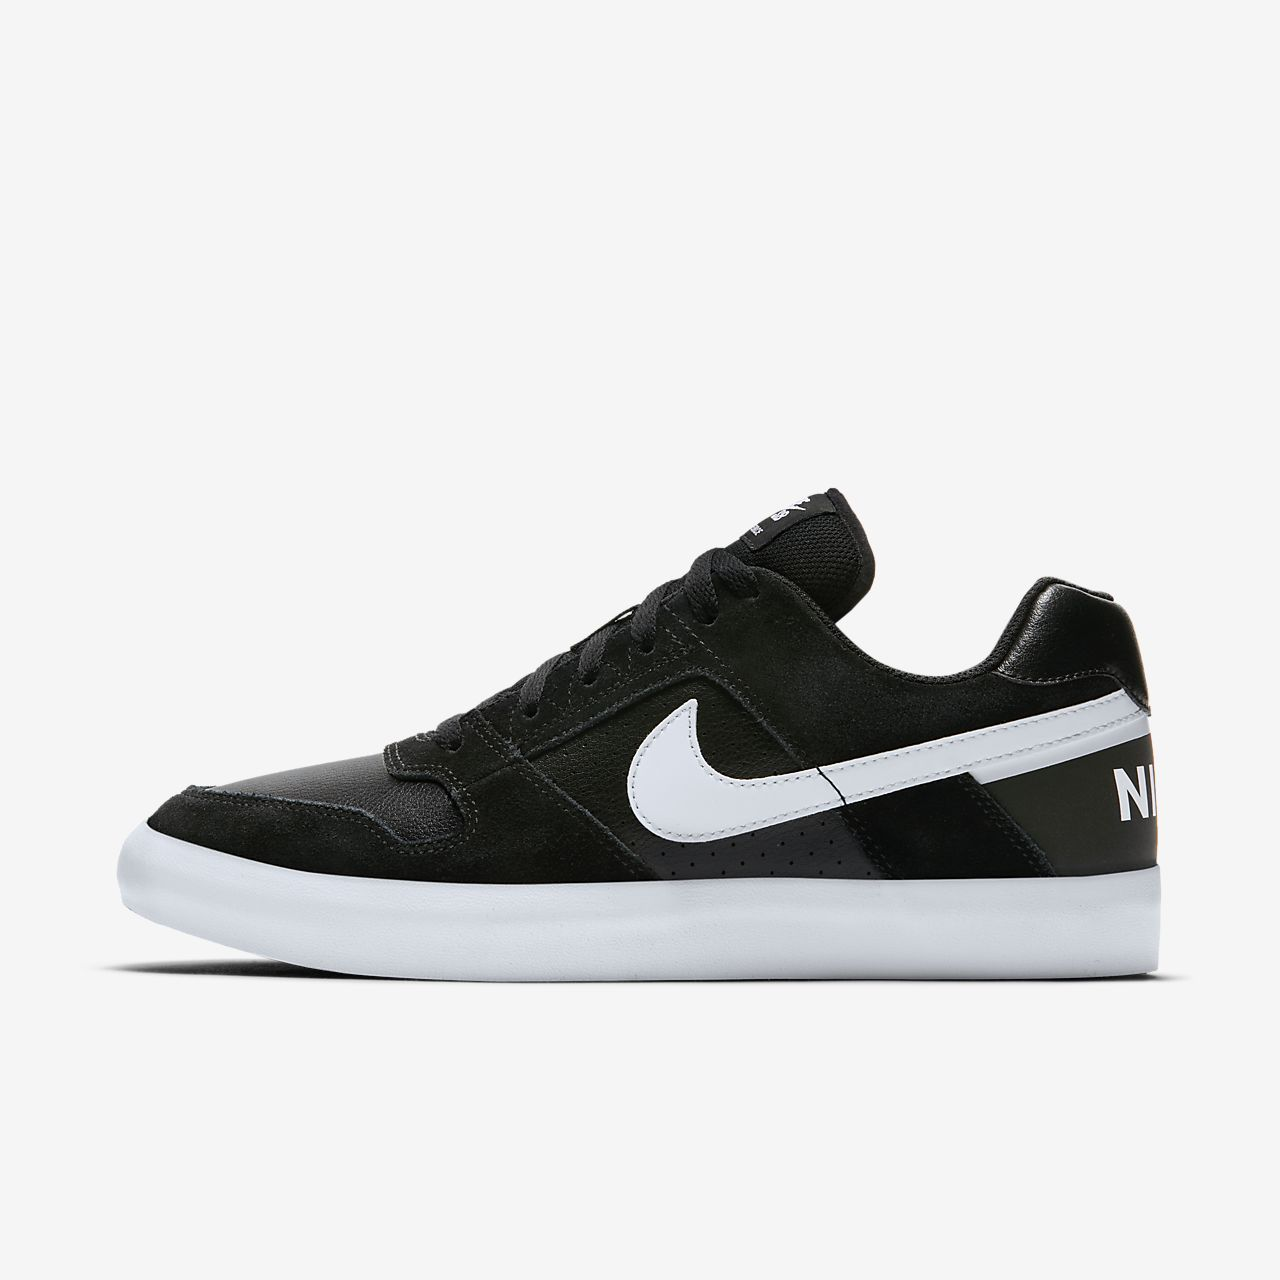 ... Nike SB Delta Force Vulc Men's Skateboarding Shoe